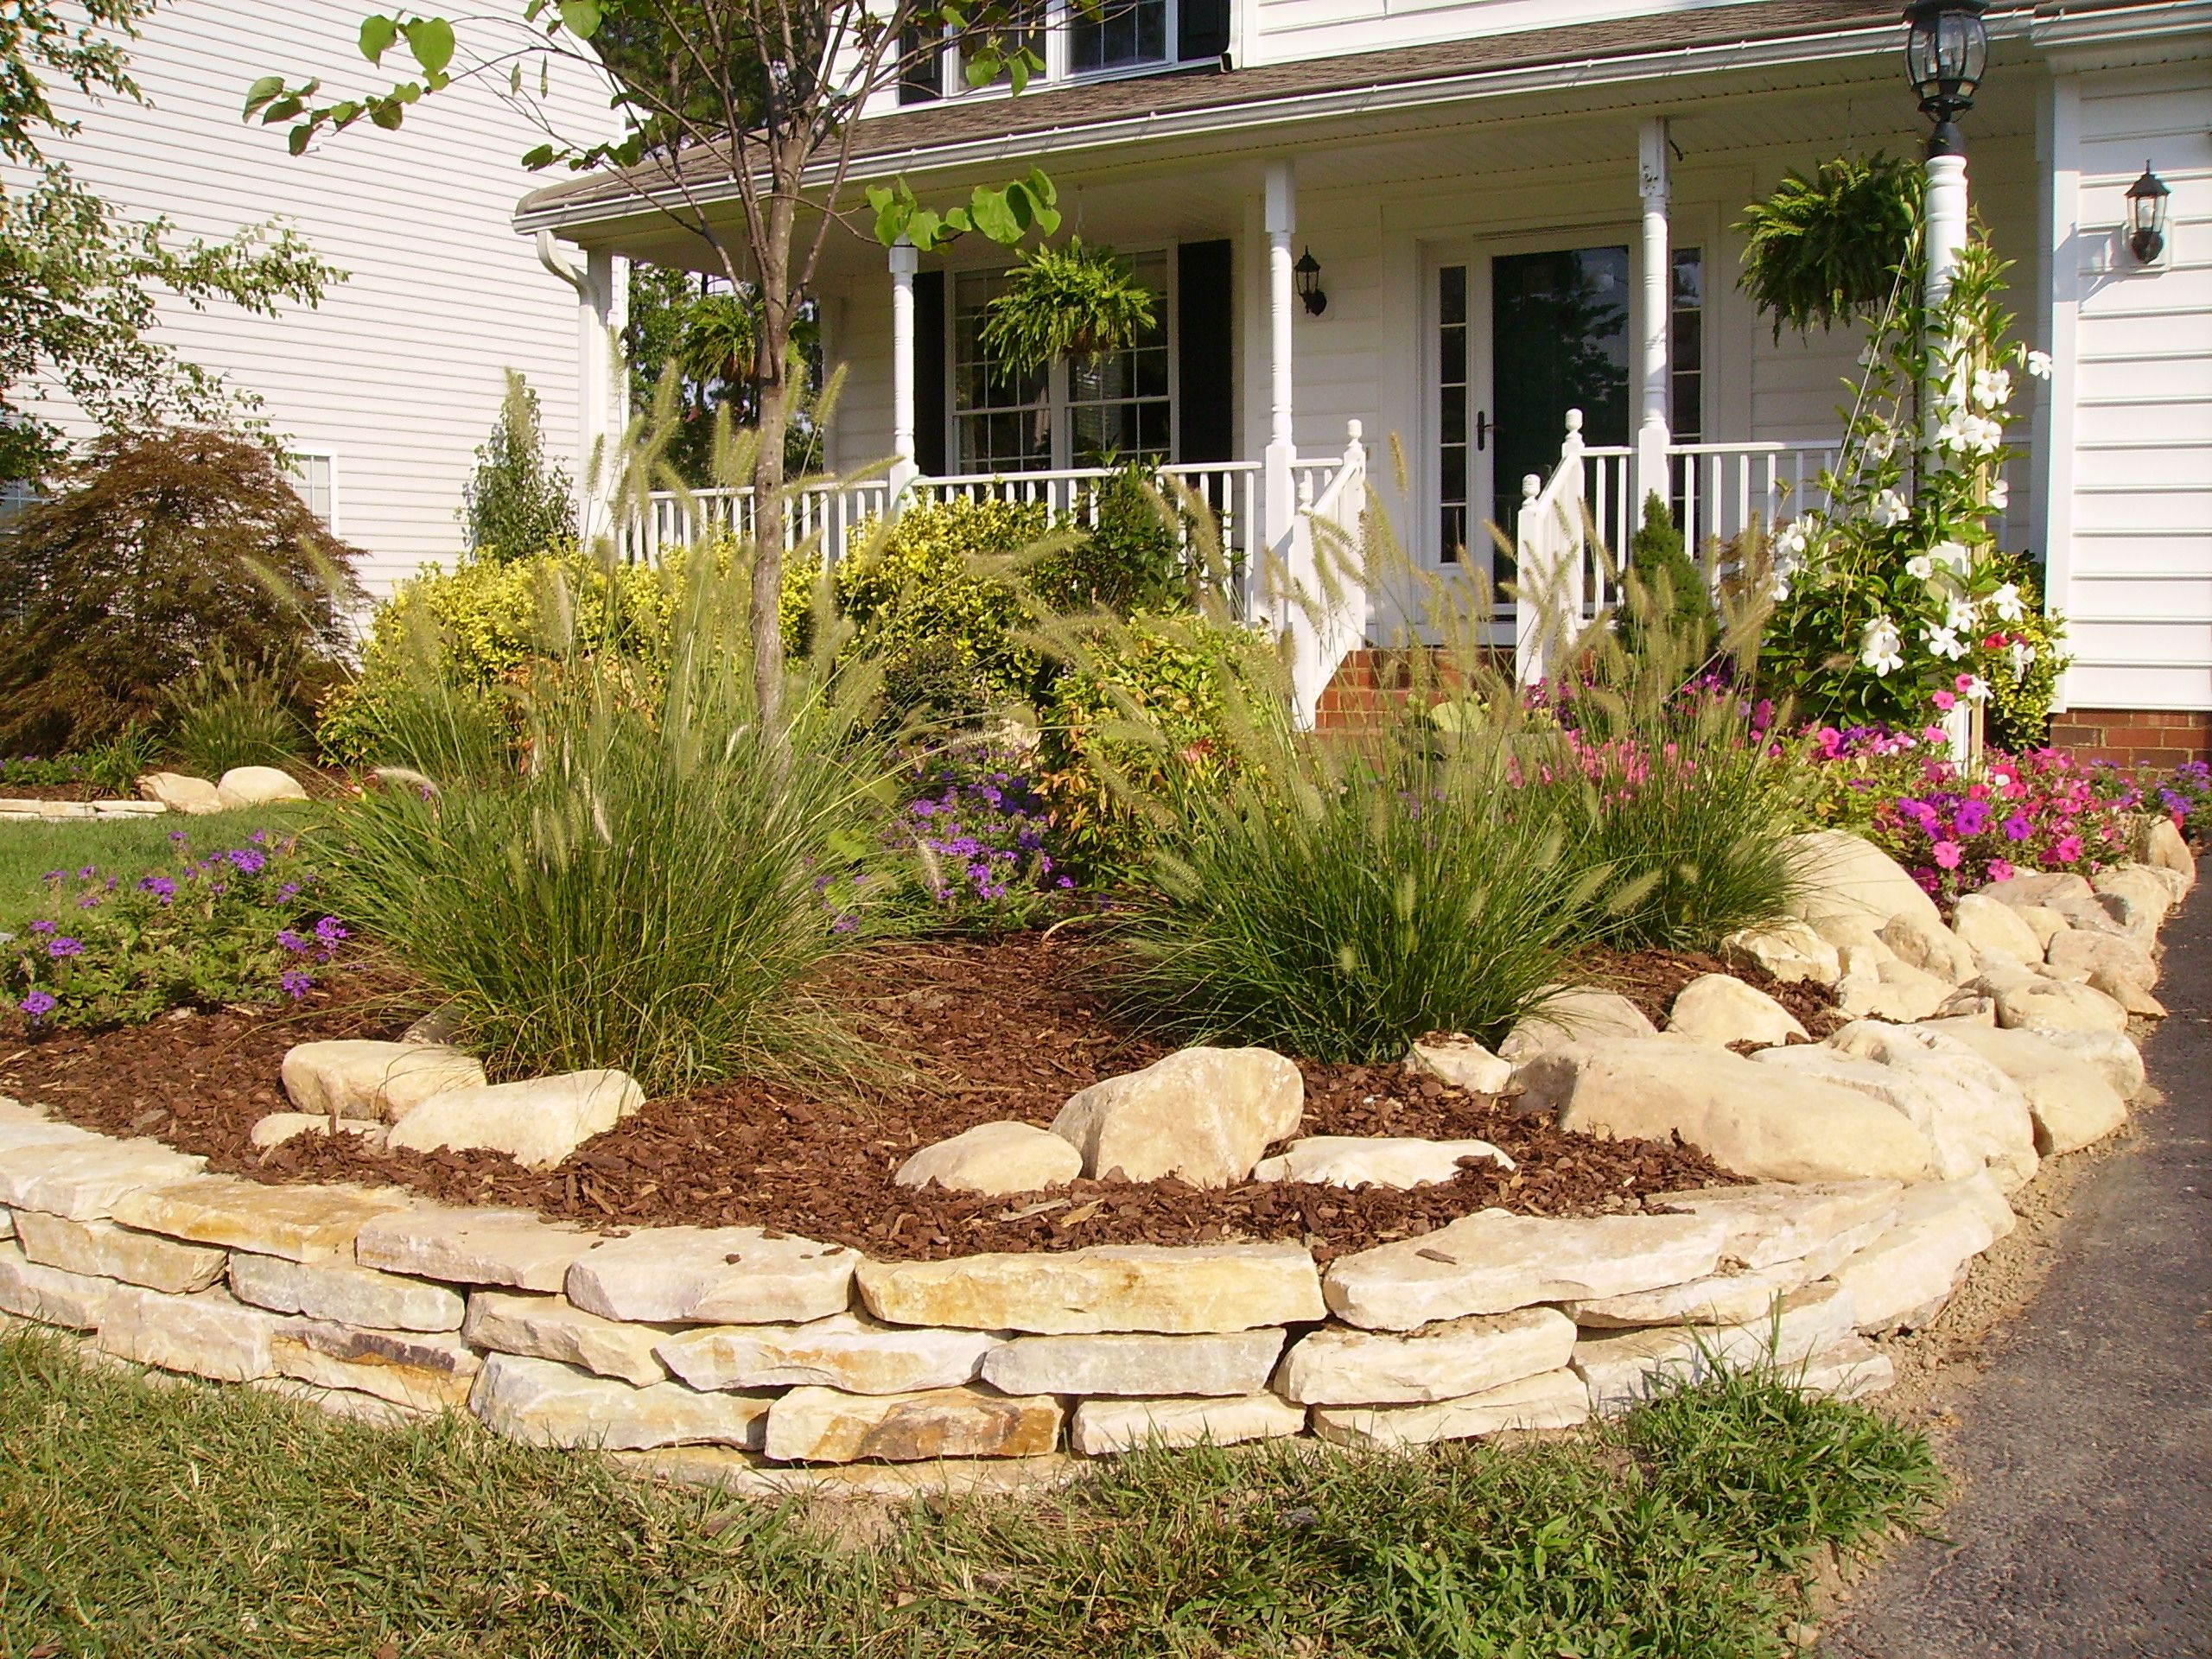 In this photo, the stacked stone is edging the flowerbed